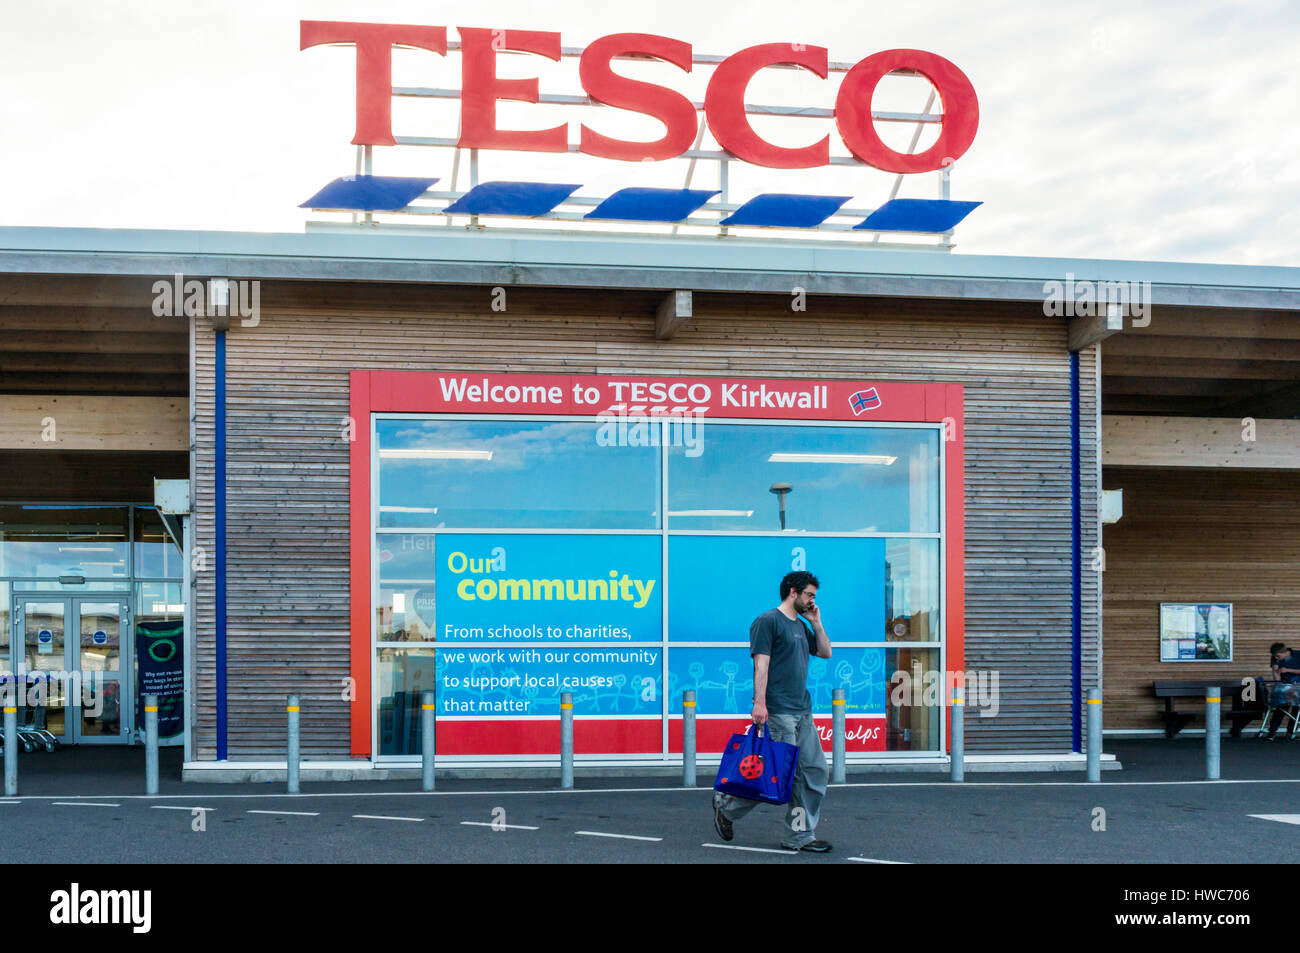 Tesco supermarket branch in Kirkwall on Mainland, Orkney. - Stock Image